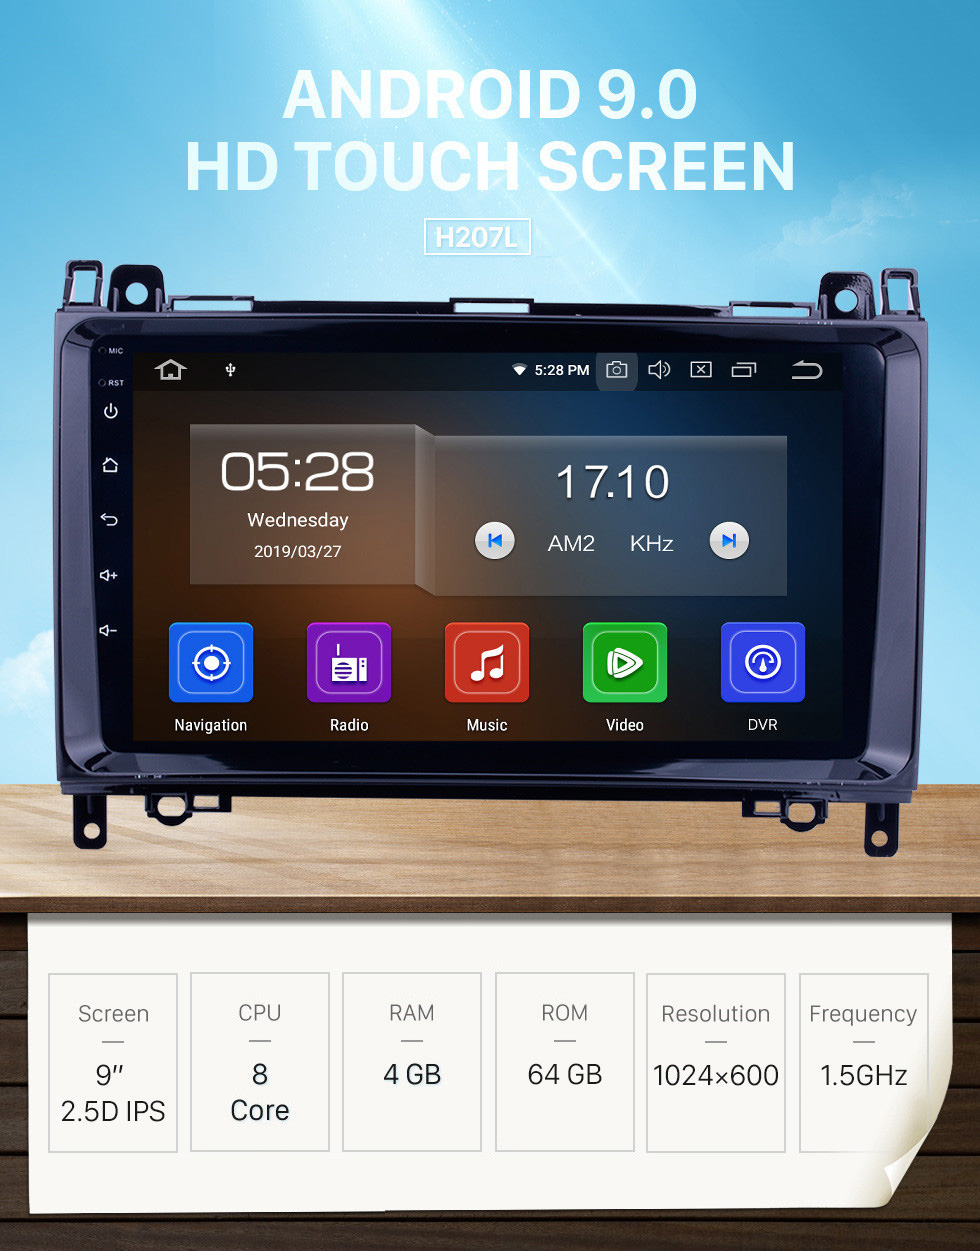 Seicane HD 1024*600 Touch Screen Android 9.0 2004-2012 Mercedes Benz B W245 B150 B160 B170 B180 B200 B55 DVD GPS Audio System with AM FM Radio TV Tuner 3G WiFi Bluetooth OBD2 Mirror Link Backup Camera HD 1080P AUX